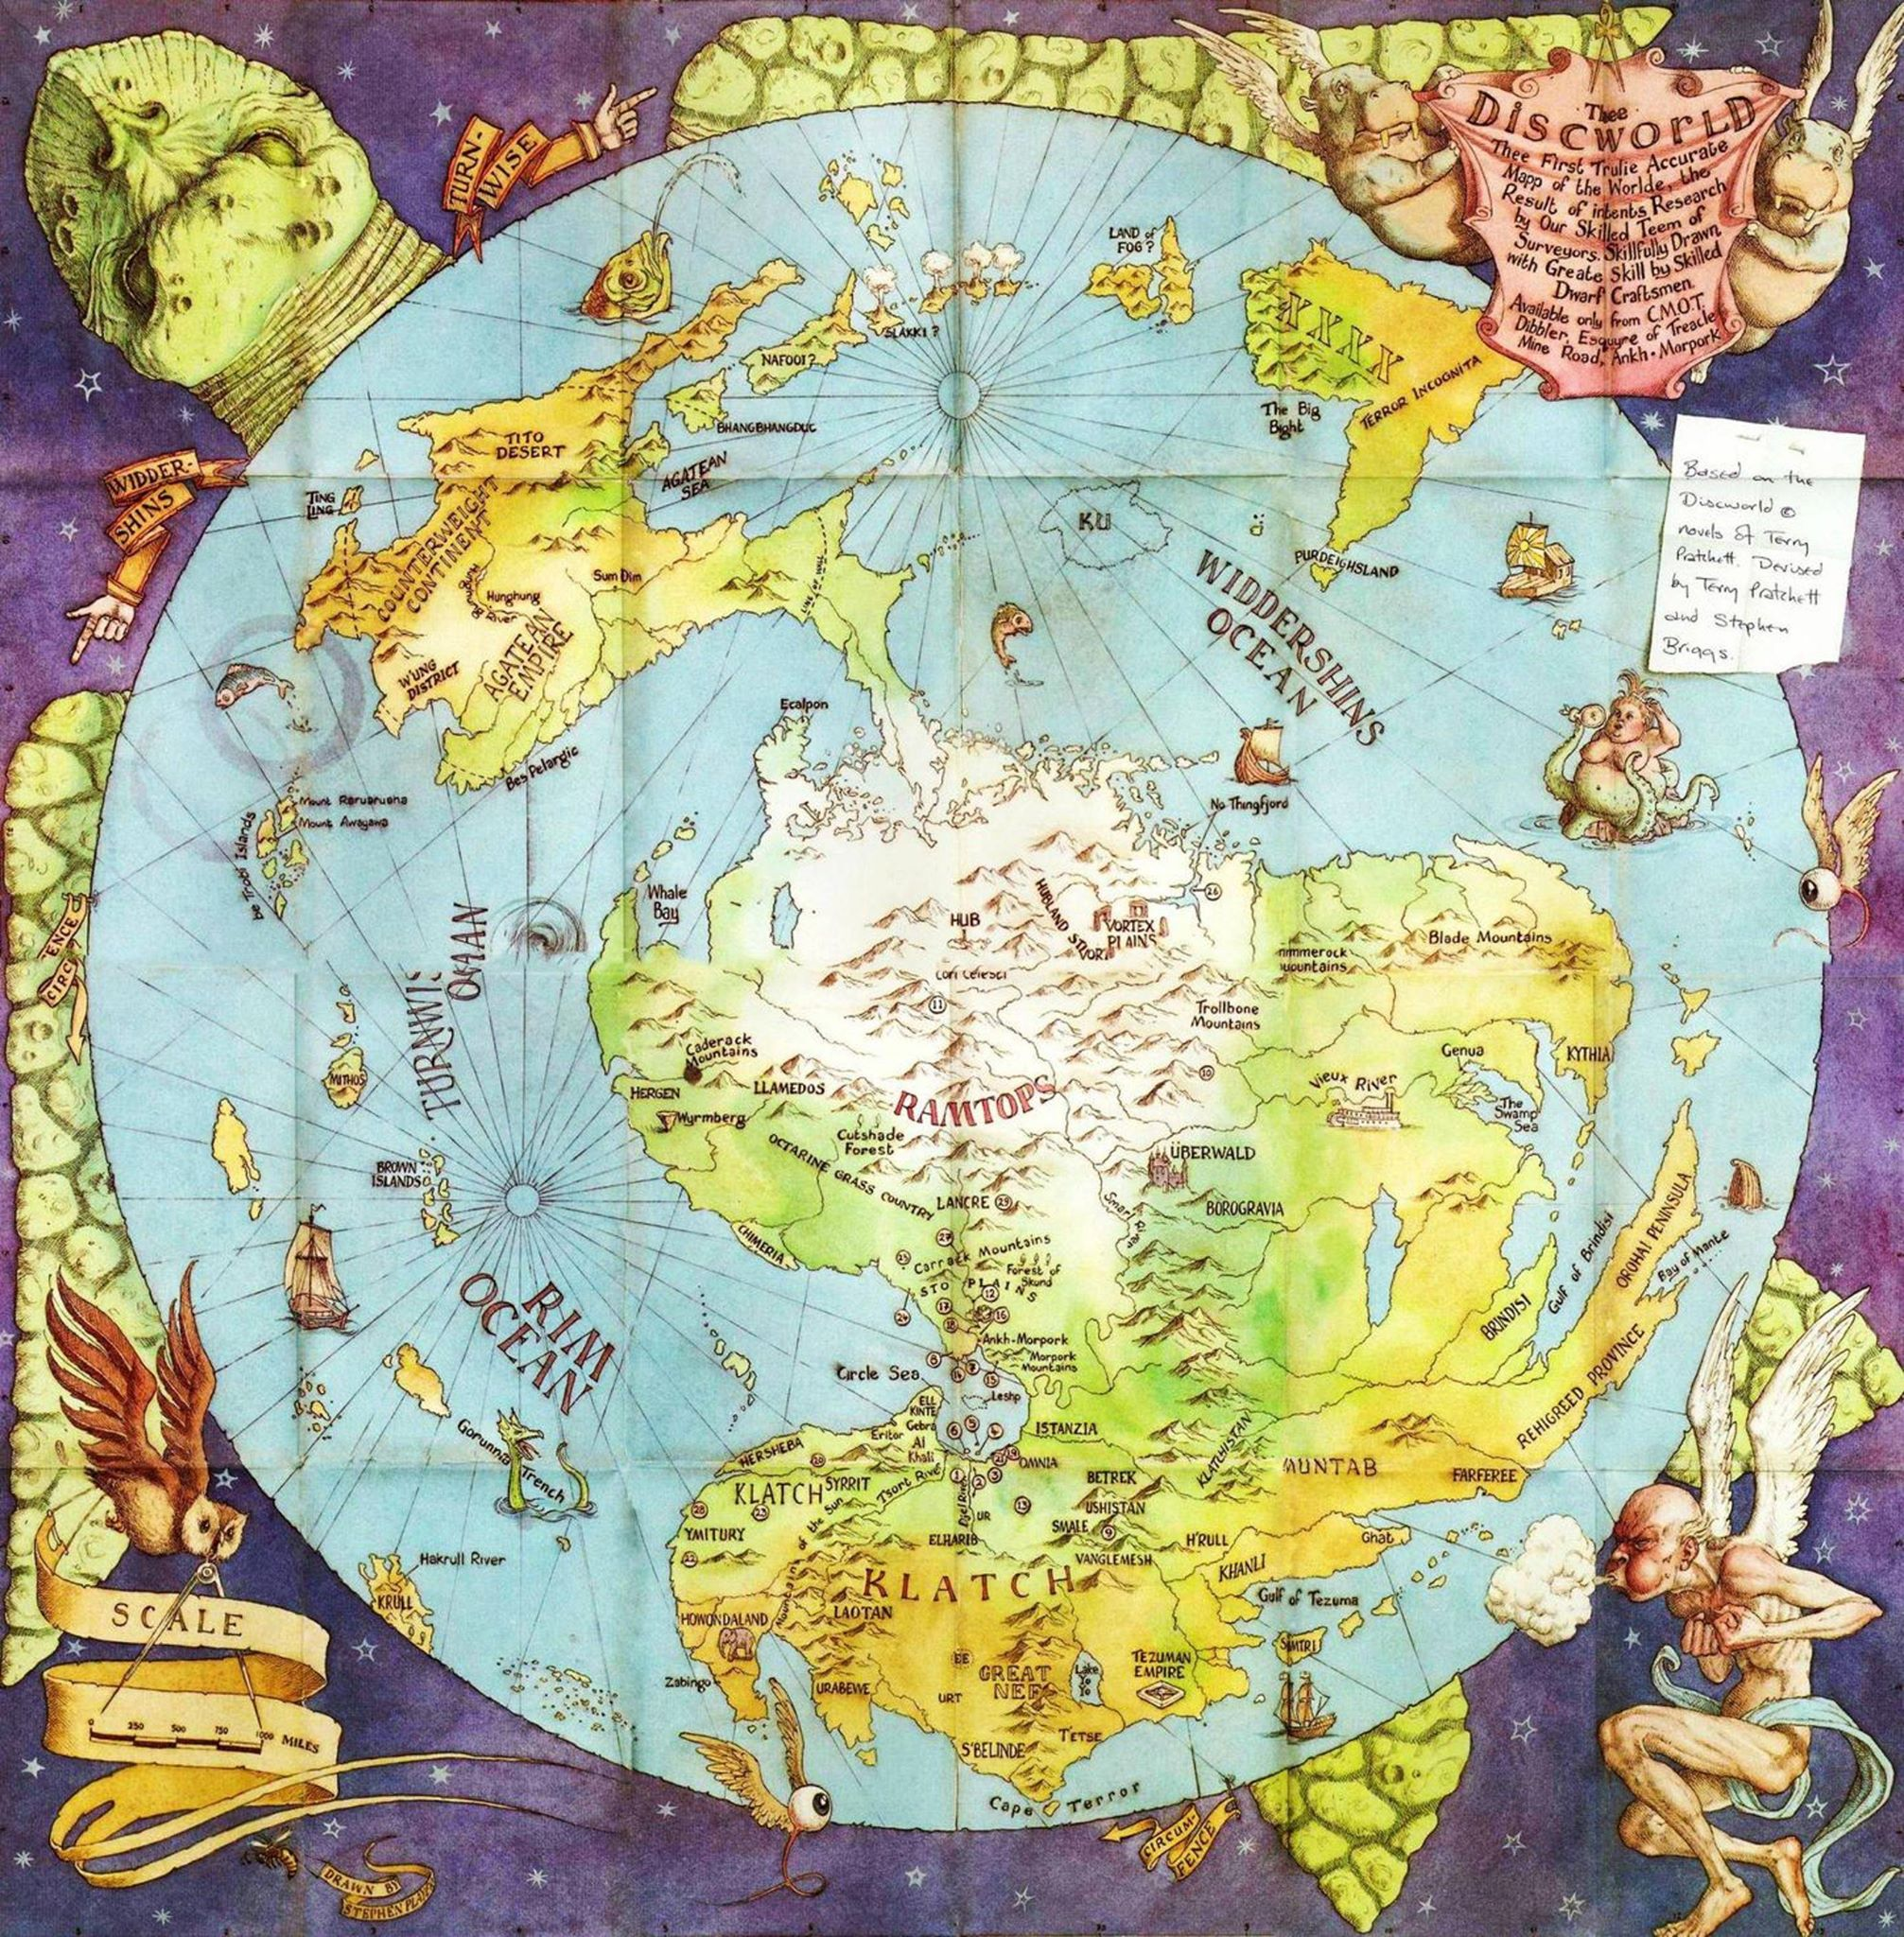 Discworld map by Stephen Briggs, illustrated by Stephen Player